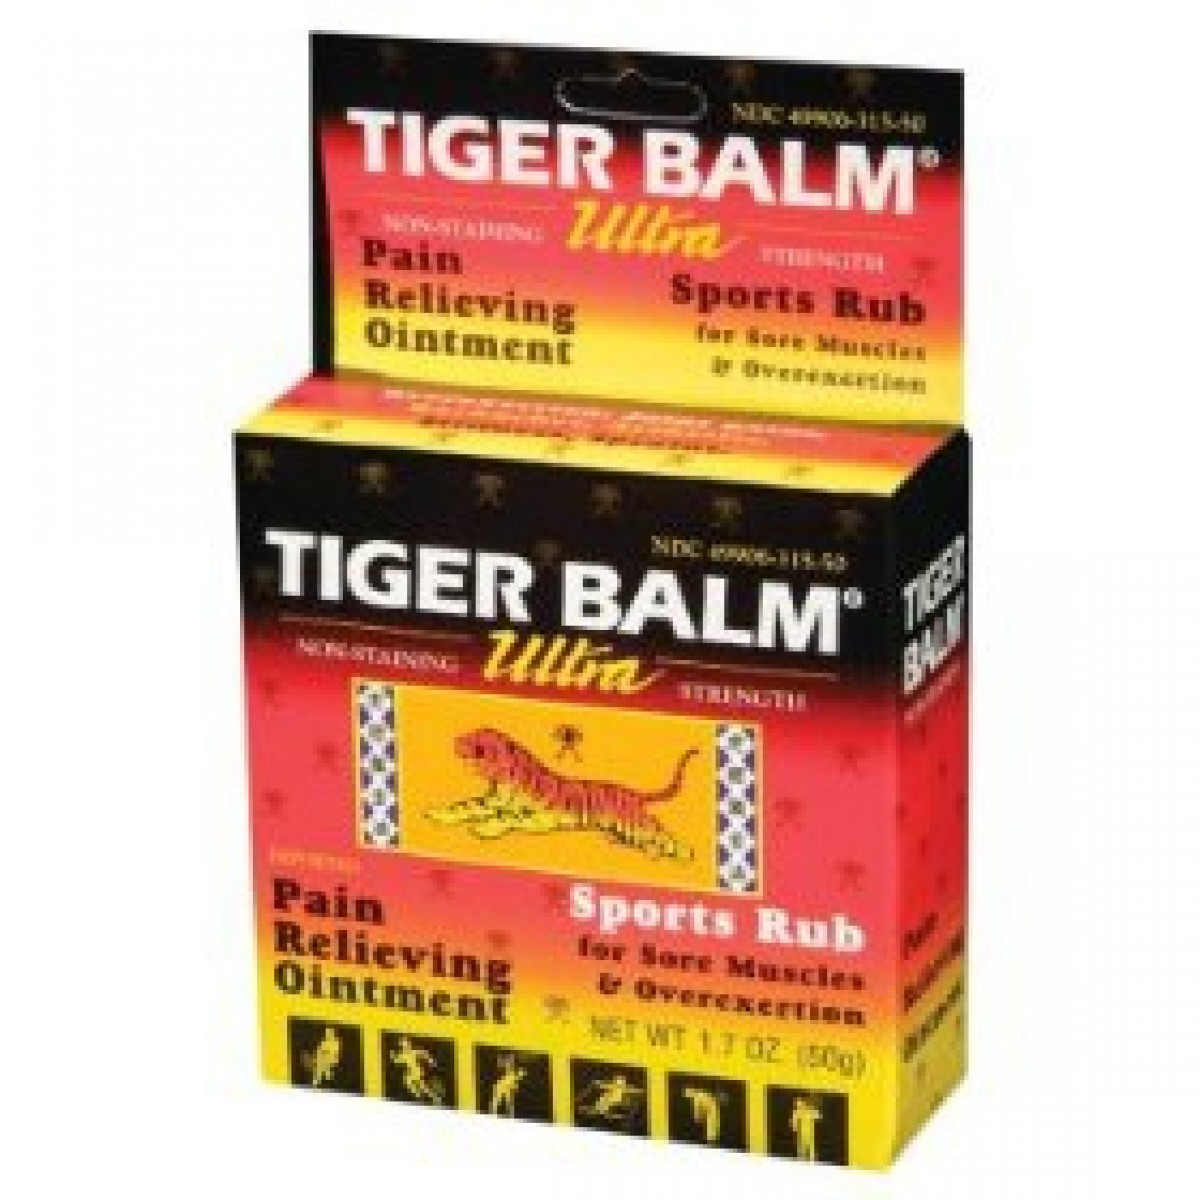 Tiger balm for pain